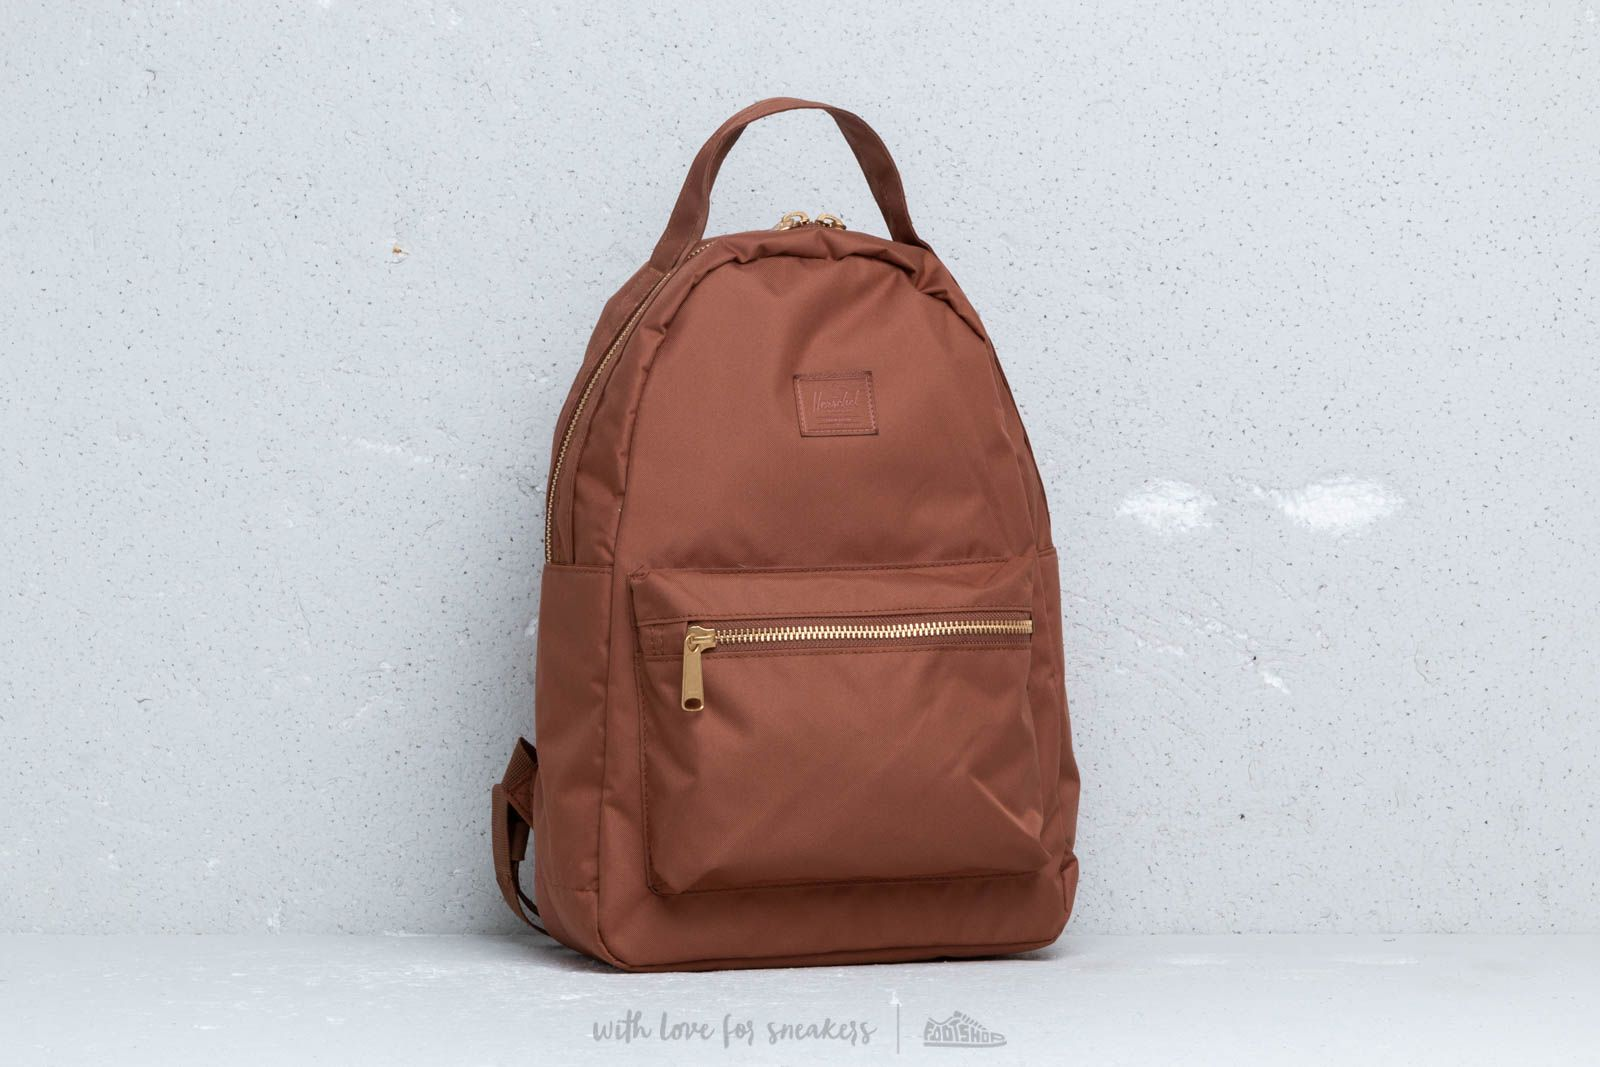 dfdf7a944 Herschel Supply Co. Light Nova Backpack Saddle Brown at a great price $60  buy at